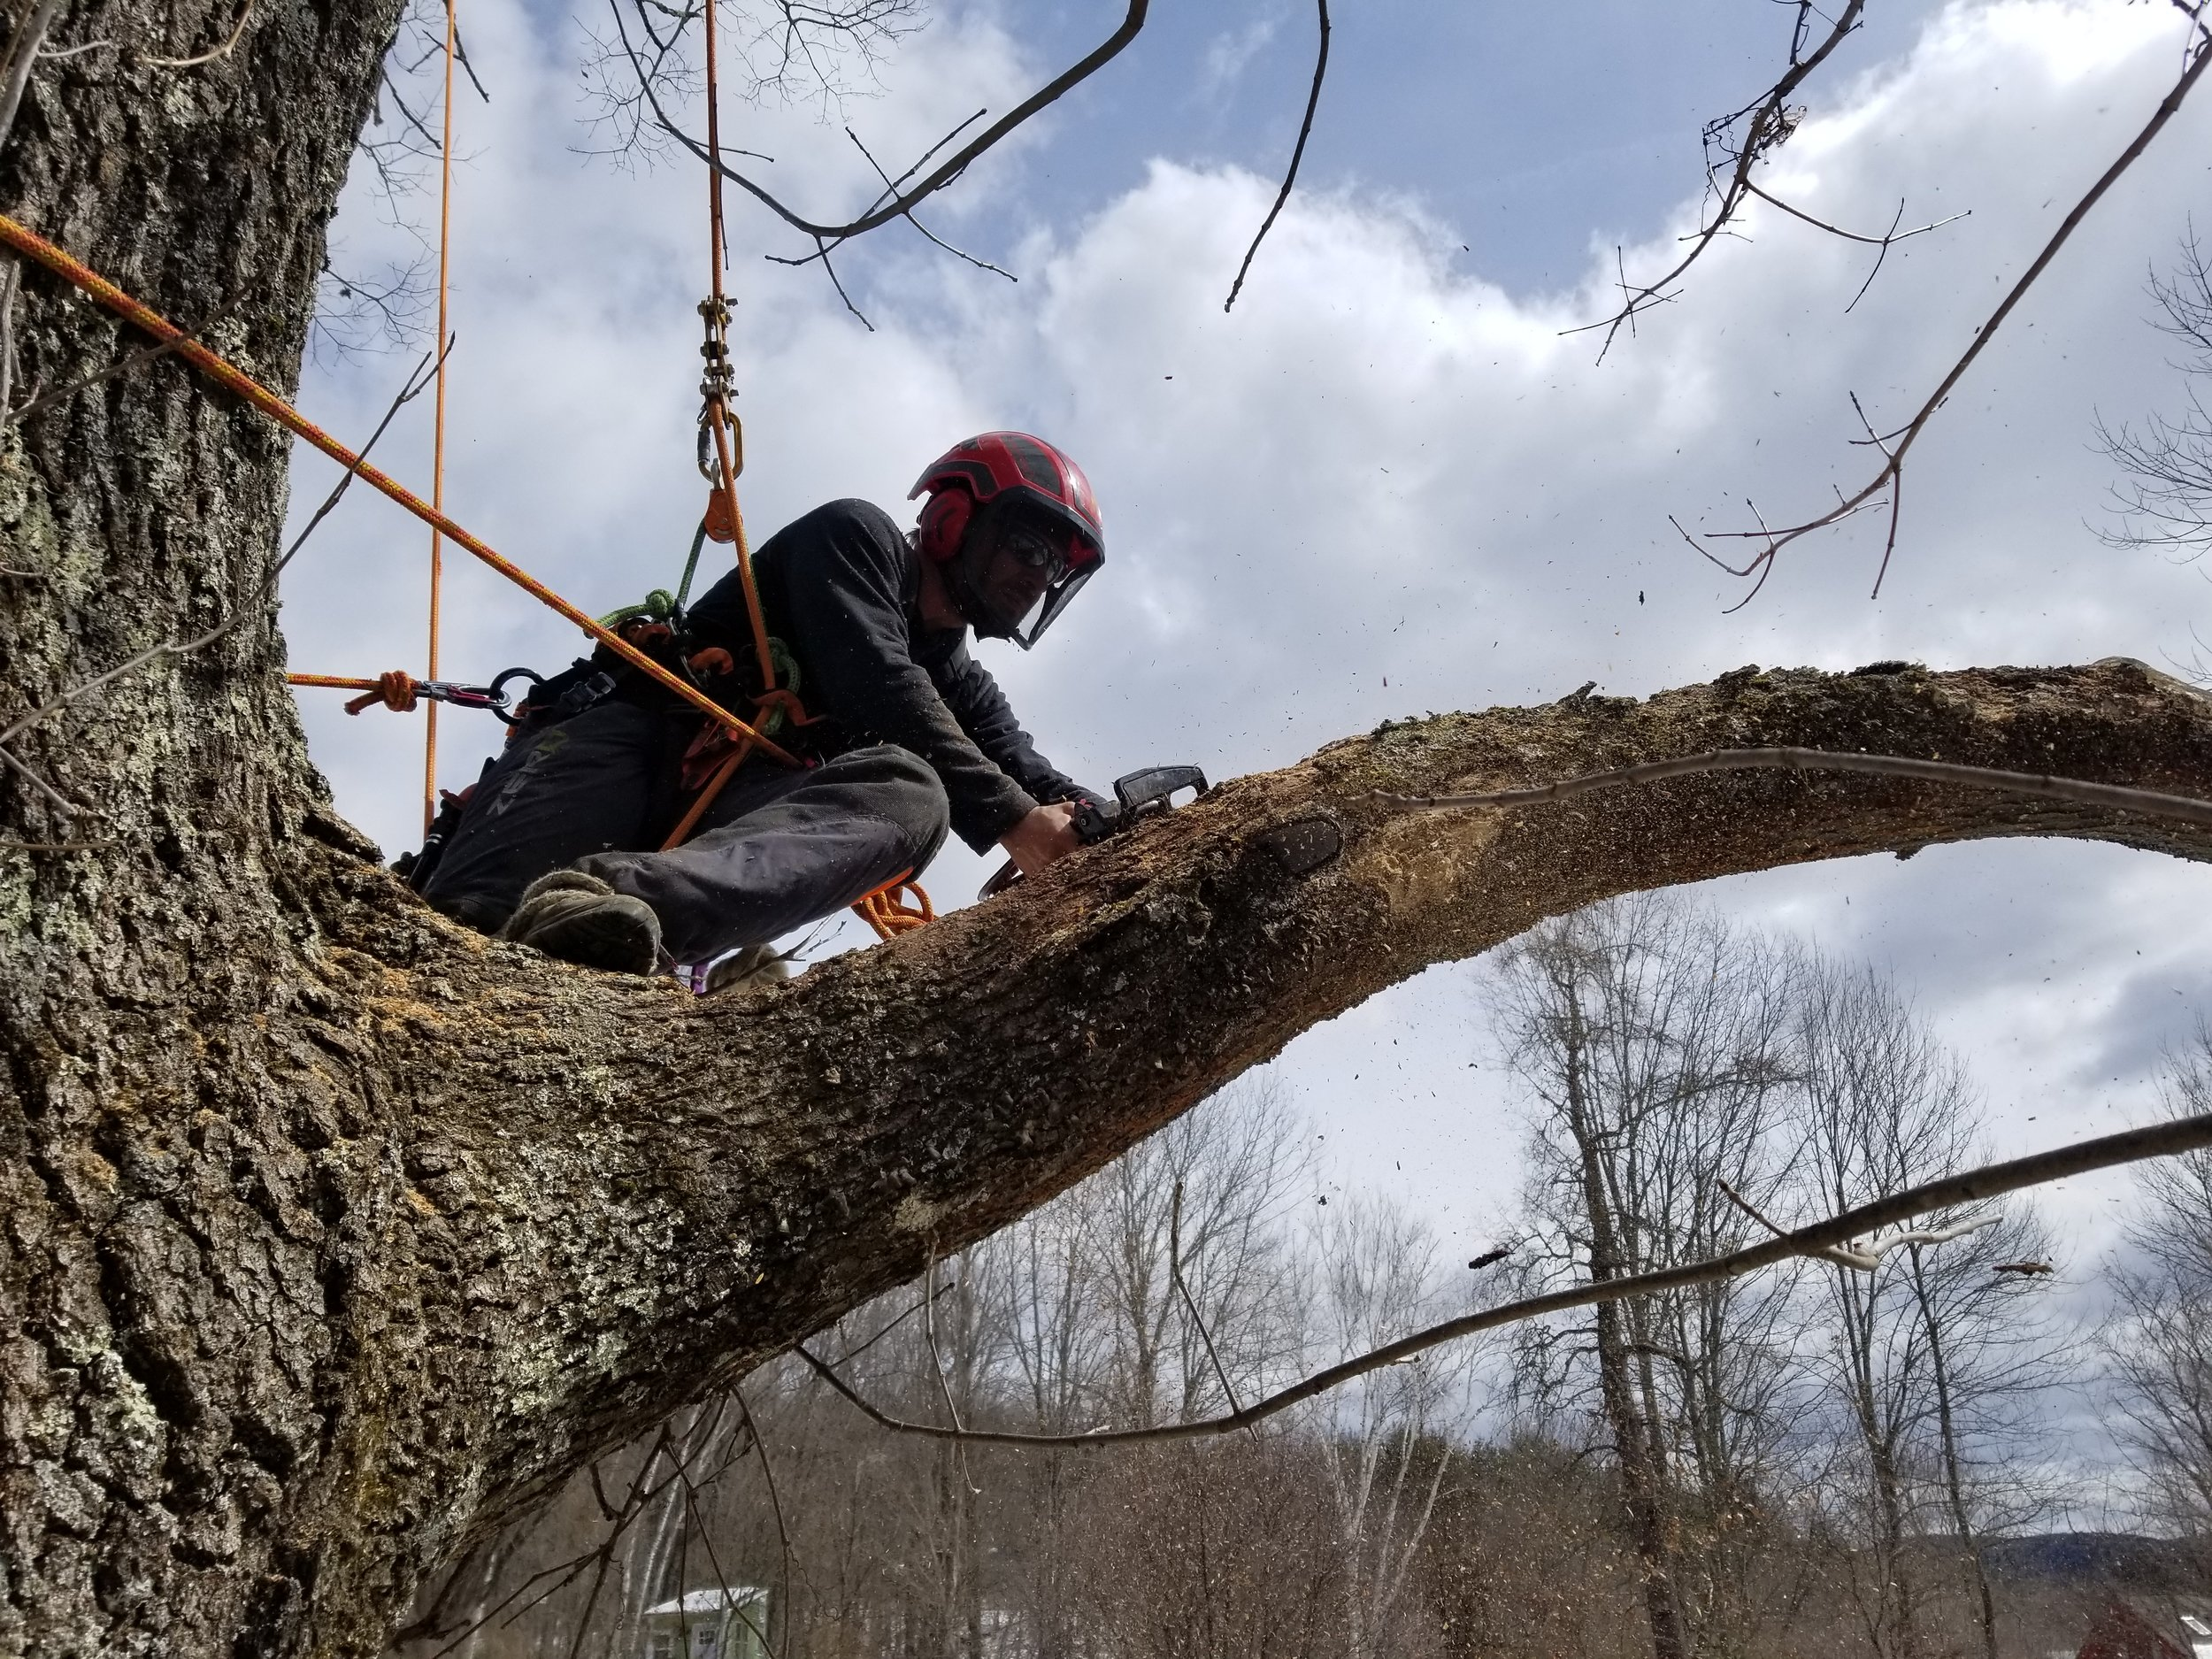 Quality and safety - Whether it's removing large dead wood from your favorite oak, pruning your apple tree, or removing that large box elder that's starting to look scary next to your house, we'll perform the work as efficiently and safely as possible. In addition to following industry safety standards, we are fully insured.Read more about our services here.